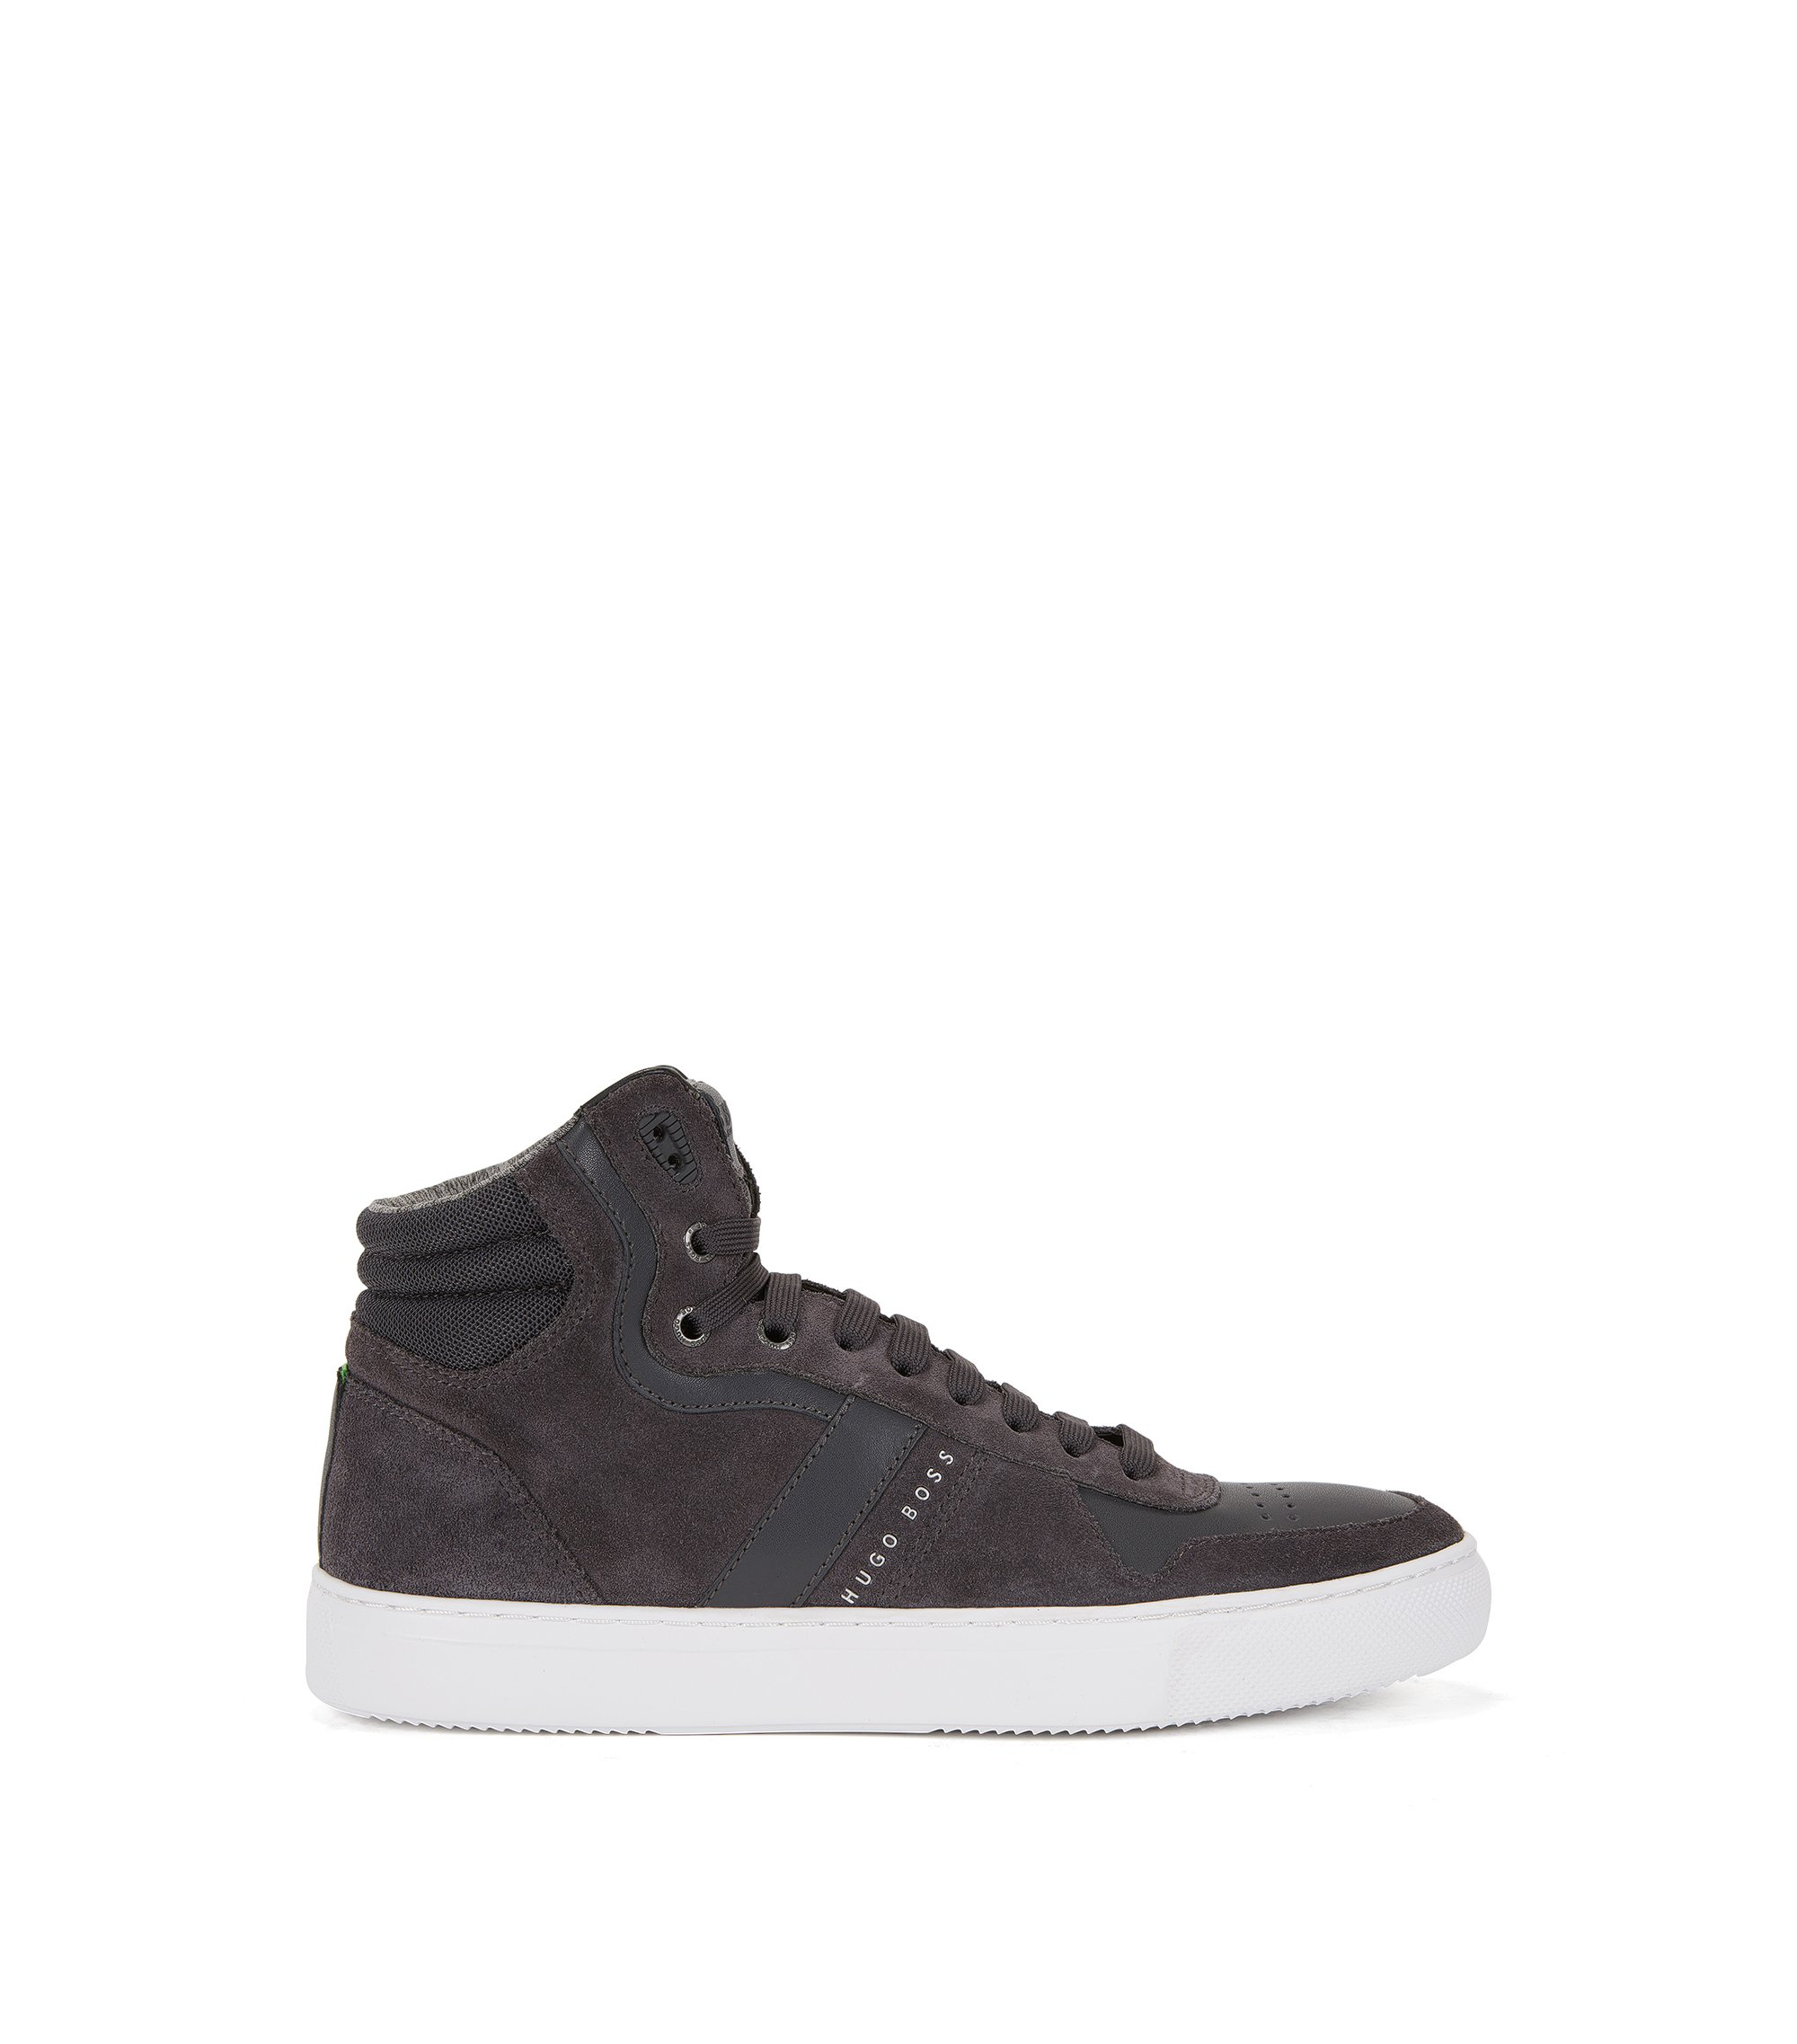 Sneakers high-top in pelle e pelle scamosciata, Grigio scuro